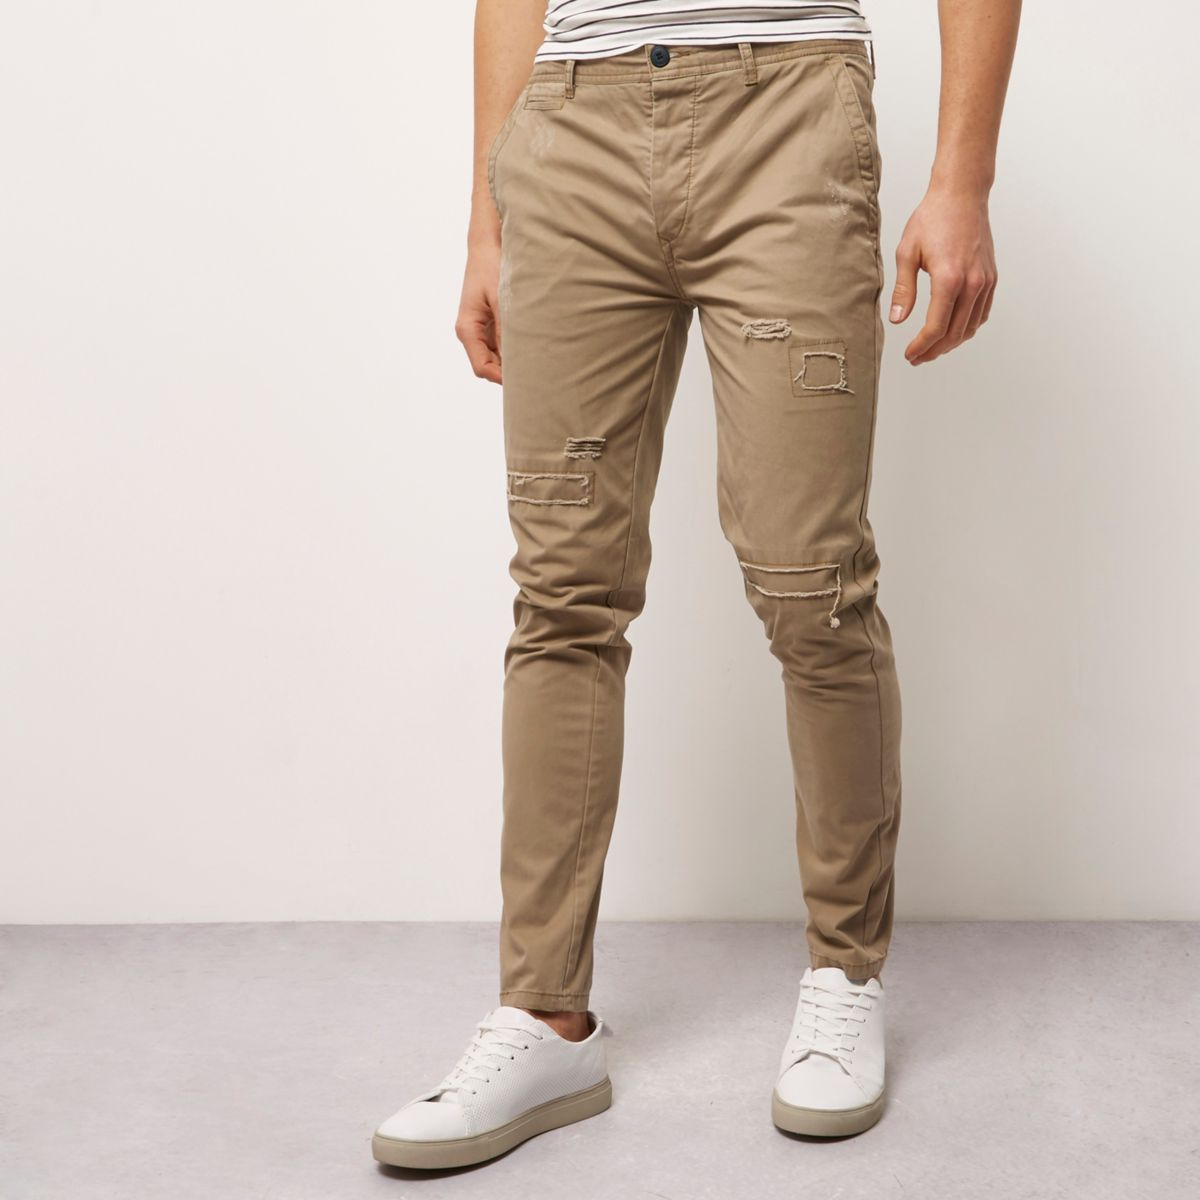 Brown skinny fit distressed casual pants